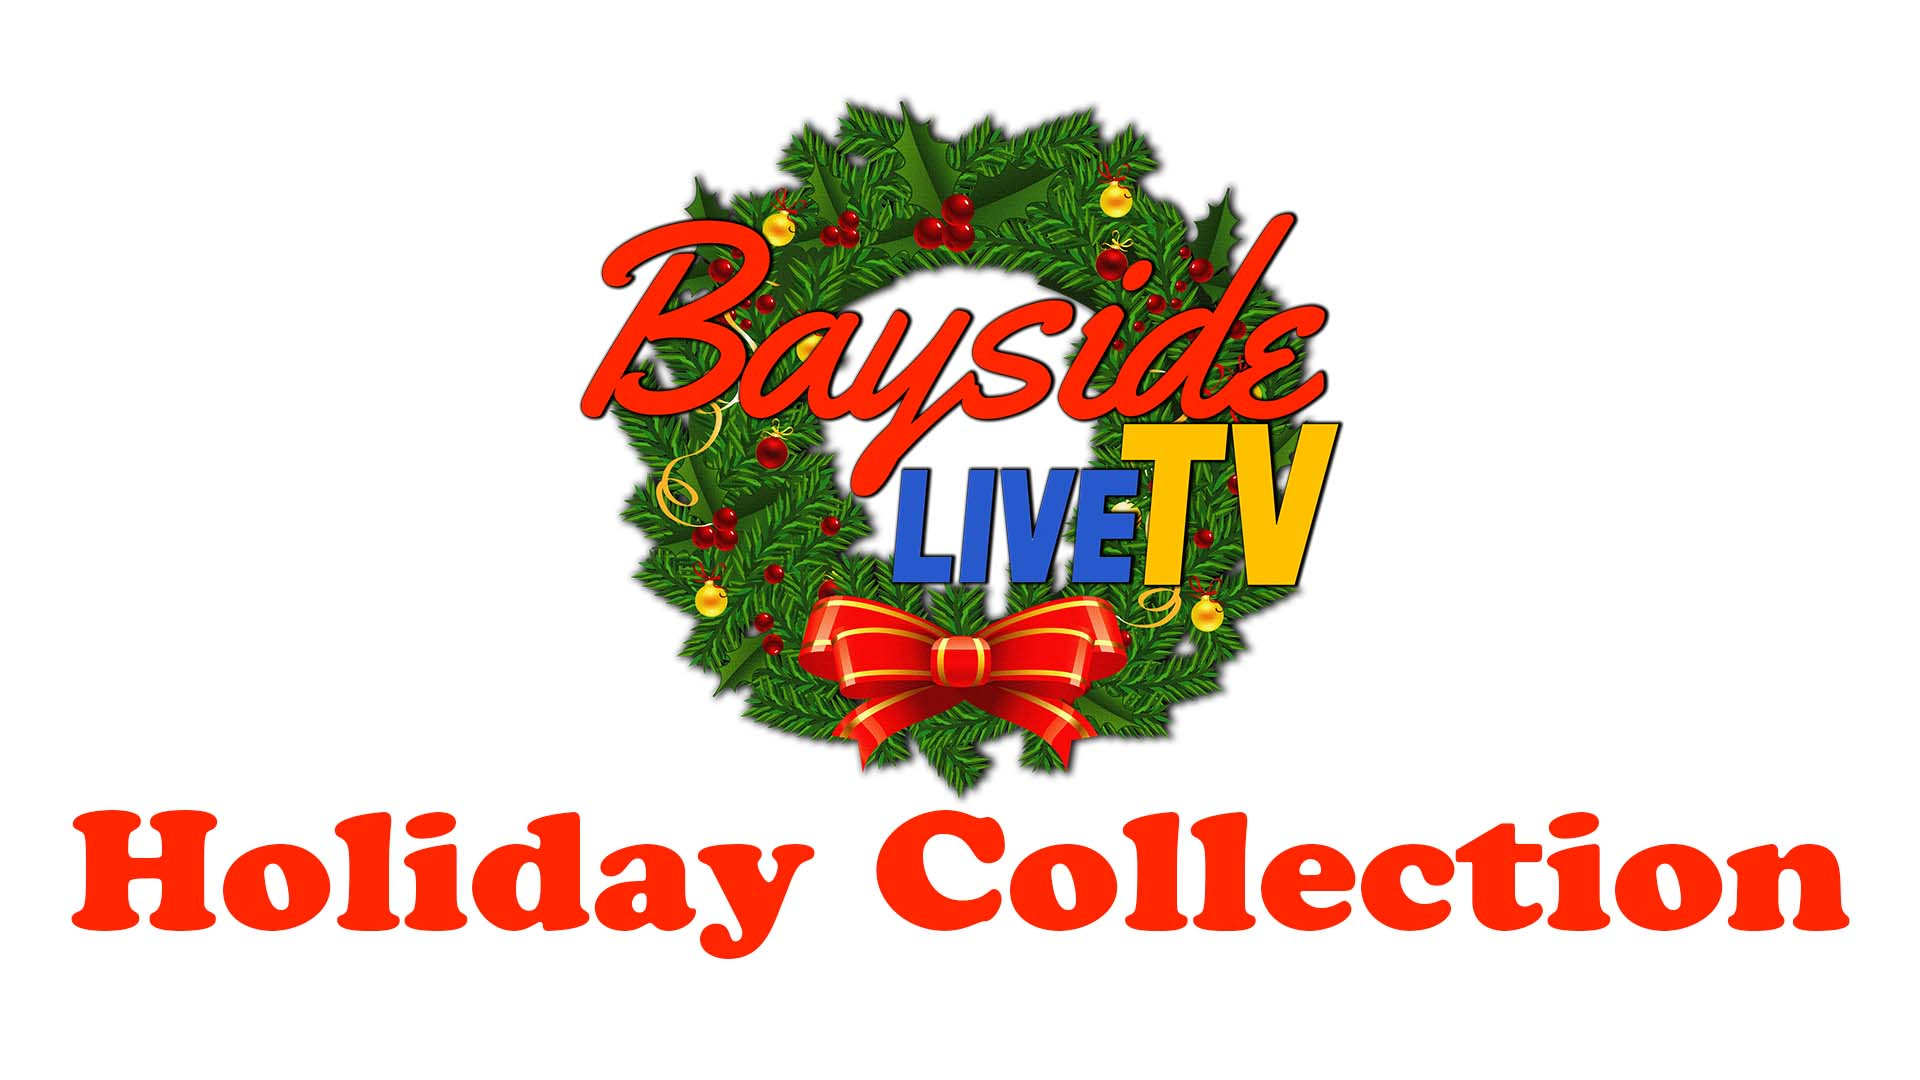 The Bayside Live TV Holiday Collection